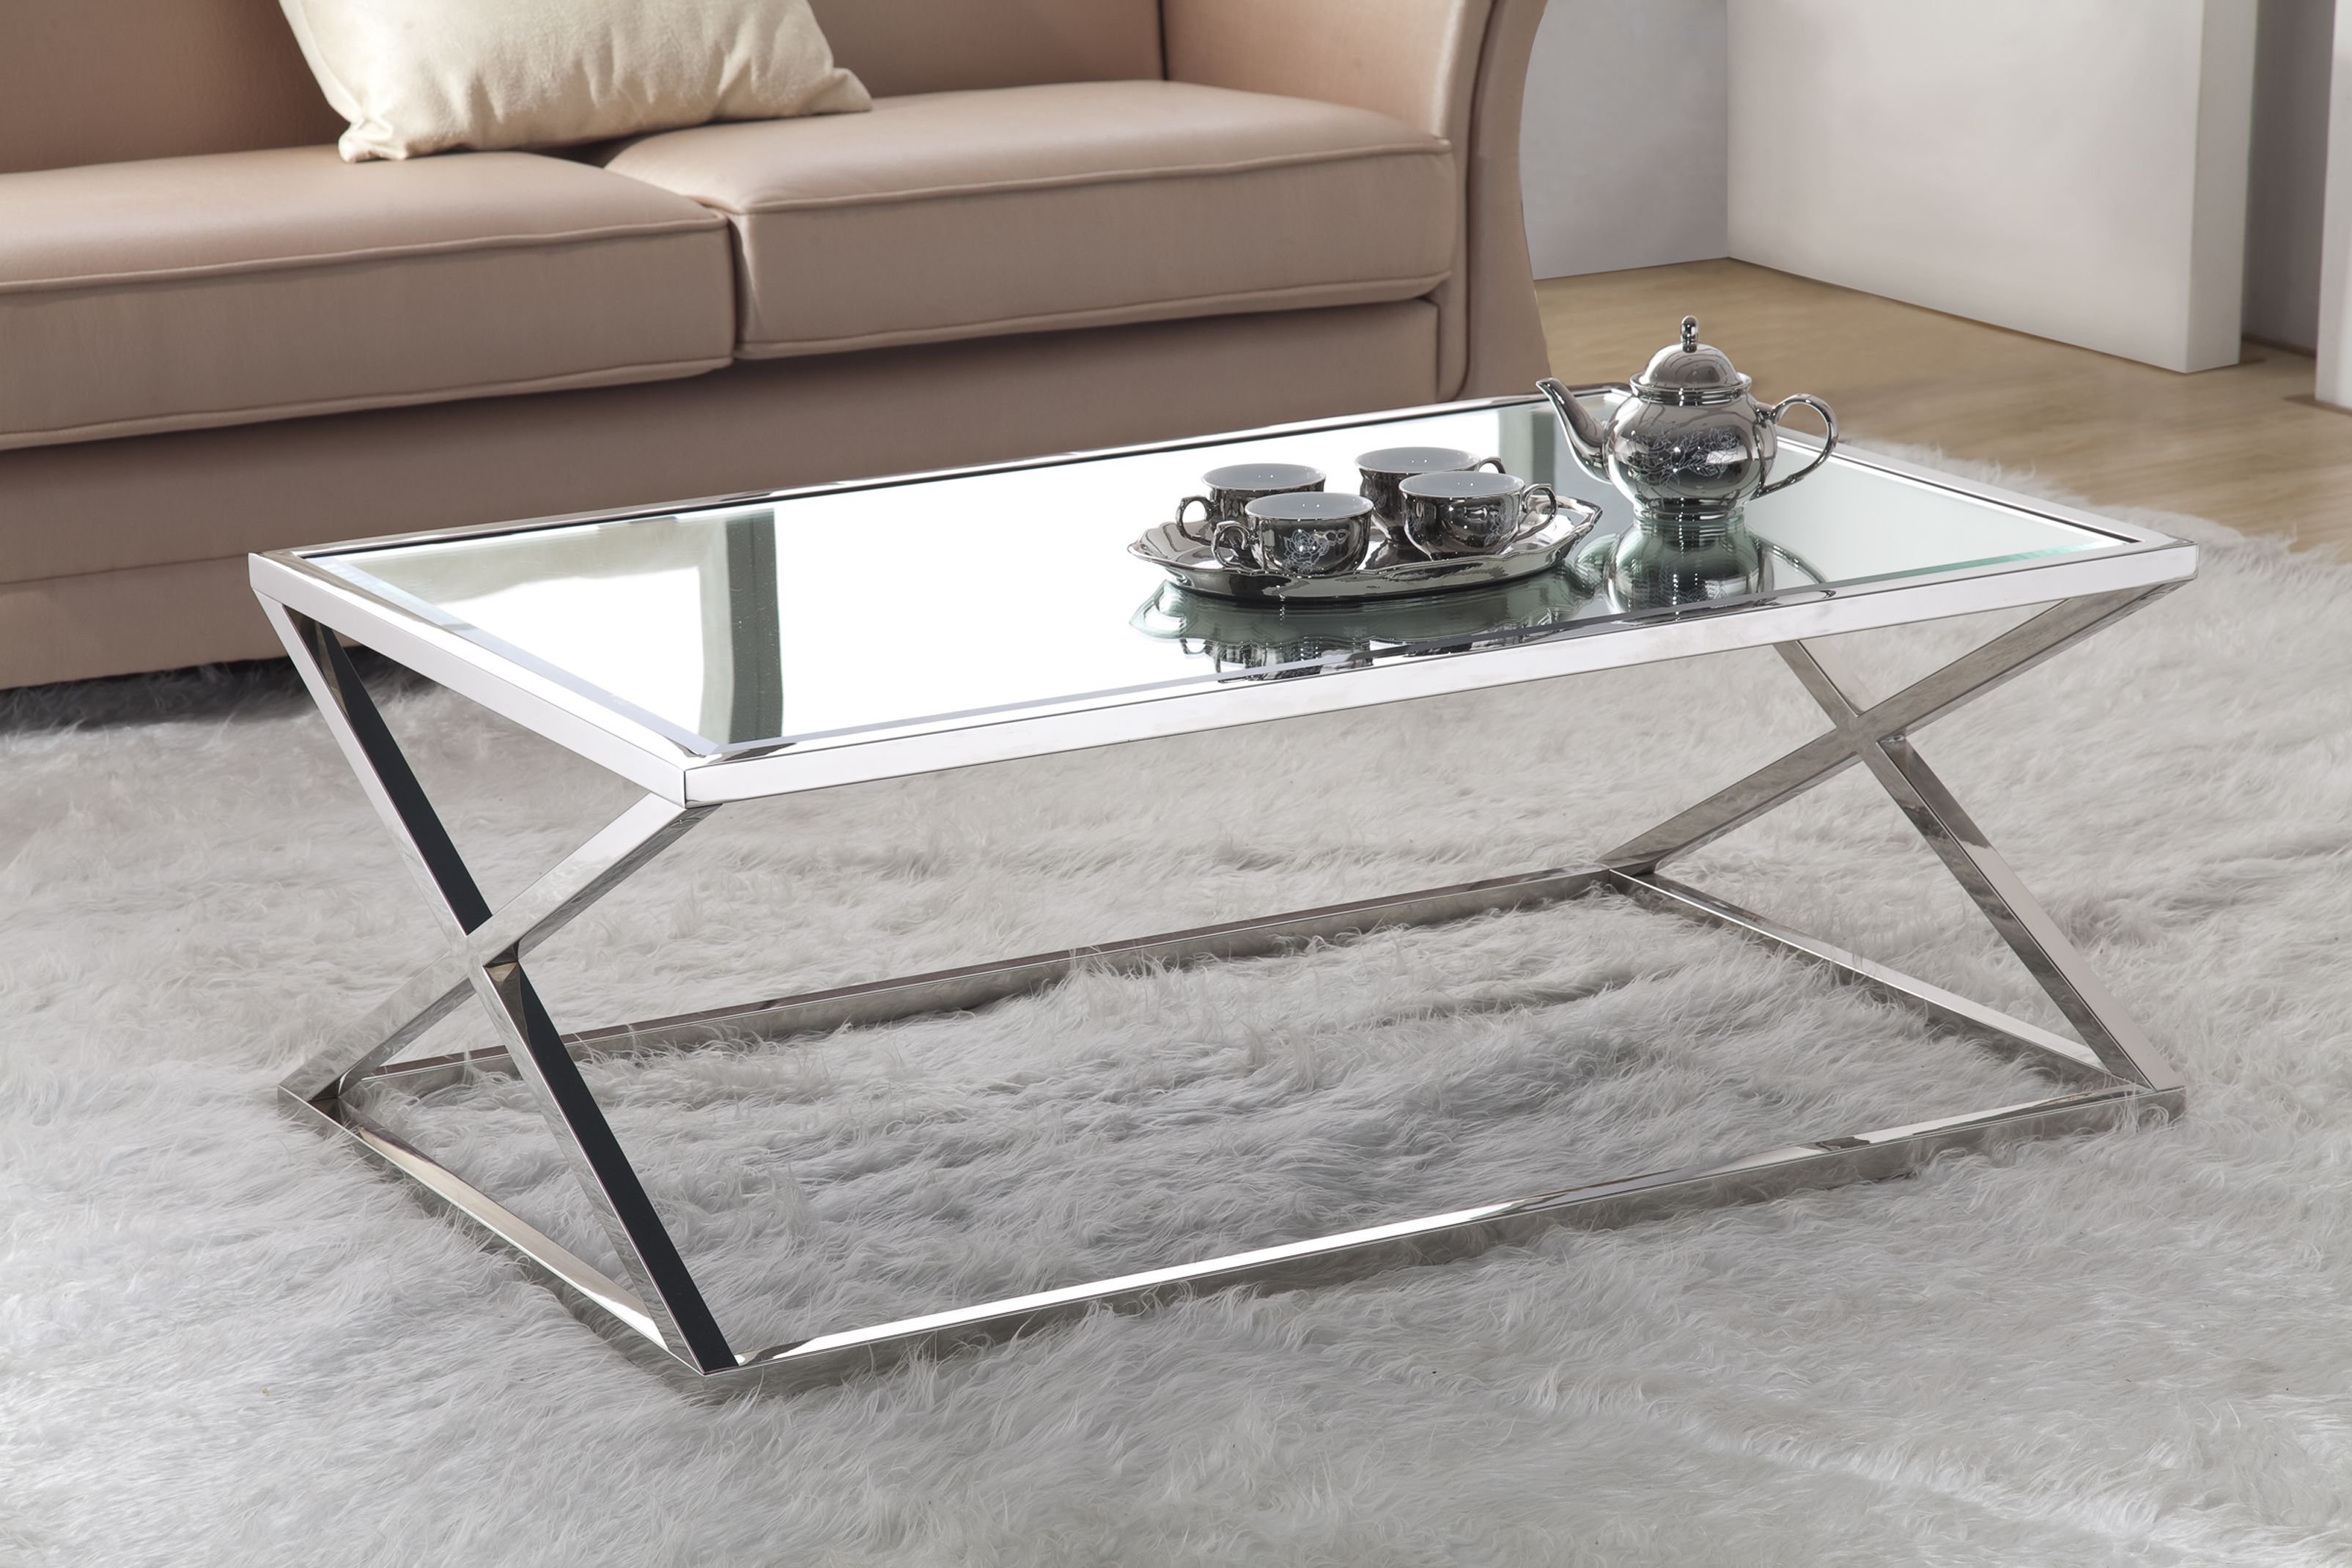 Contemporary Glass Coffee Tables Adding More Style Into The Room